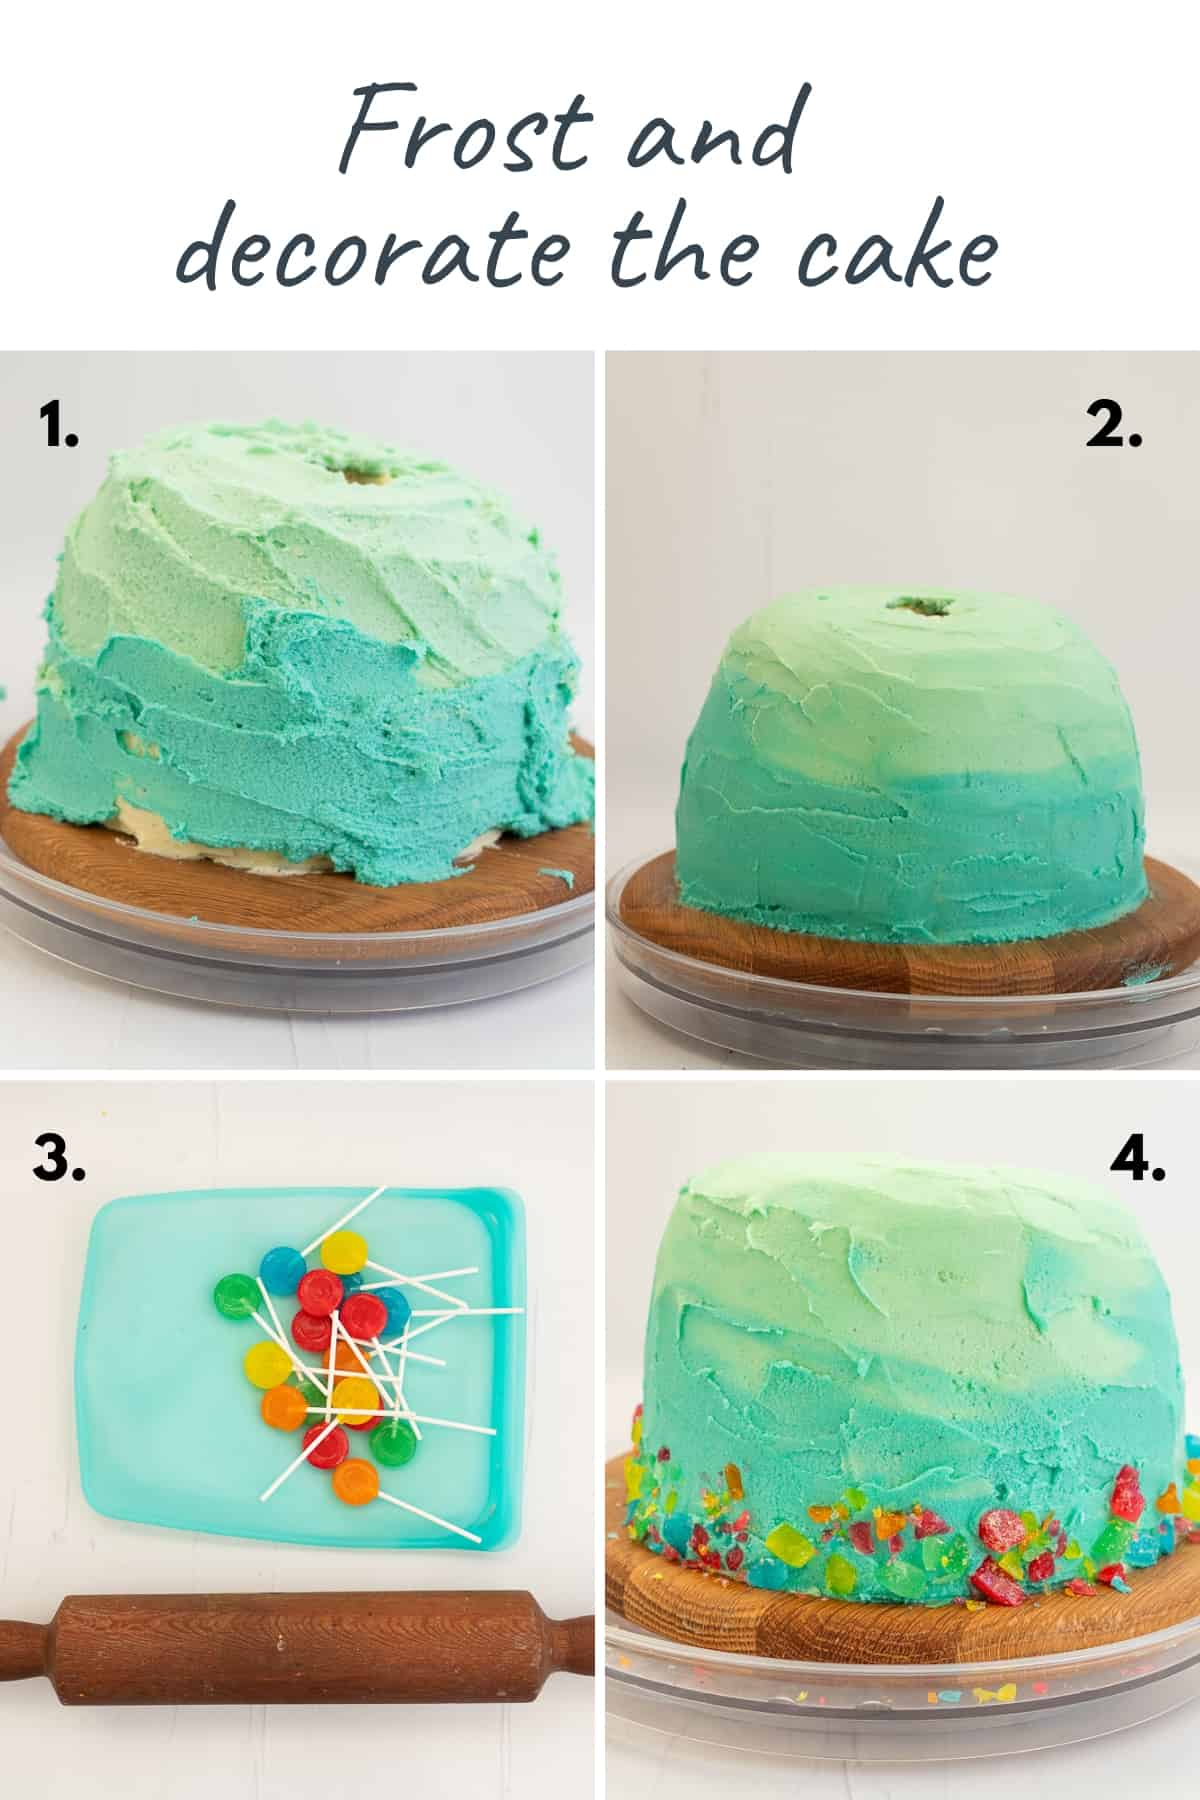 Four photo collage showing the steps to frost the cake